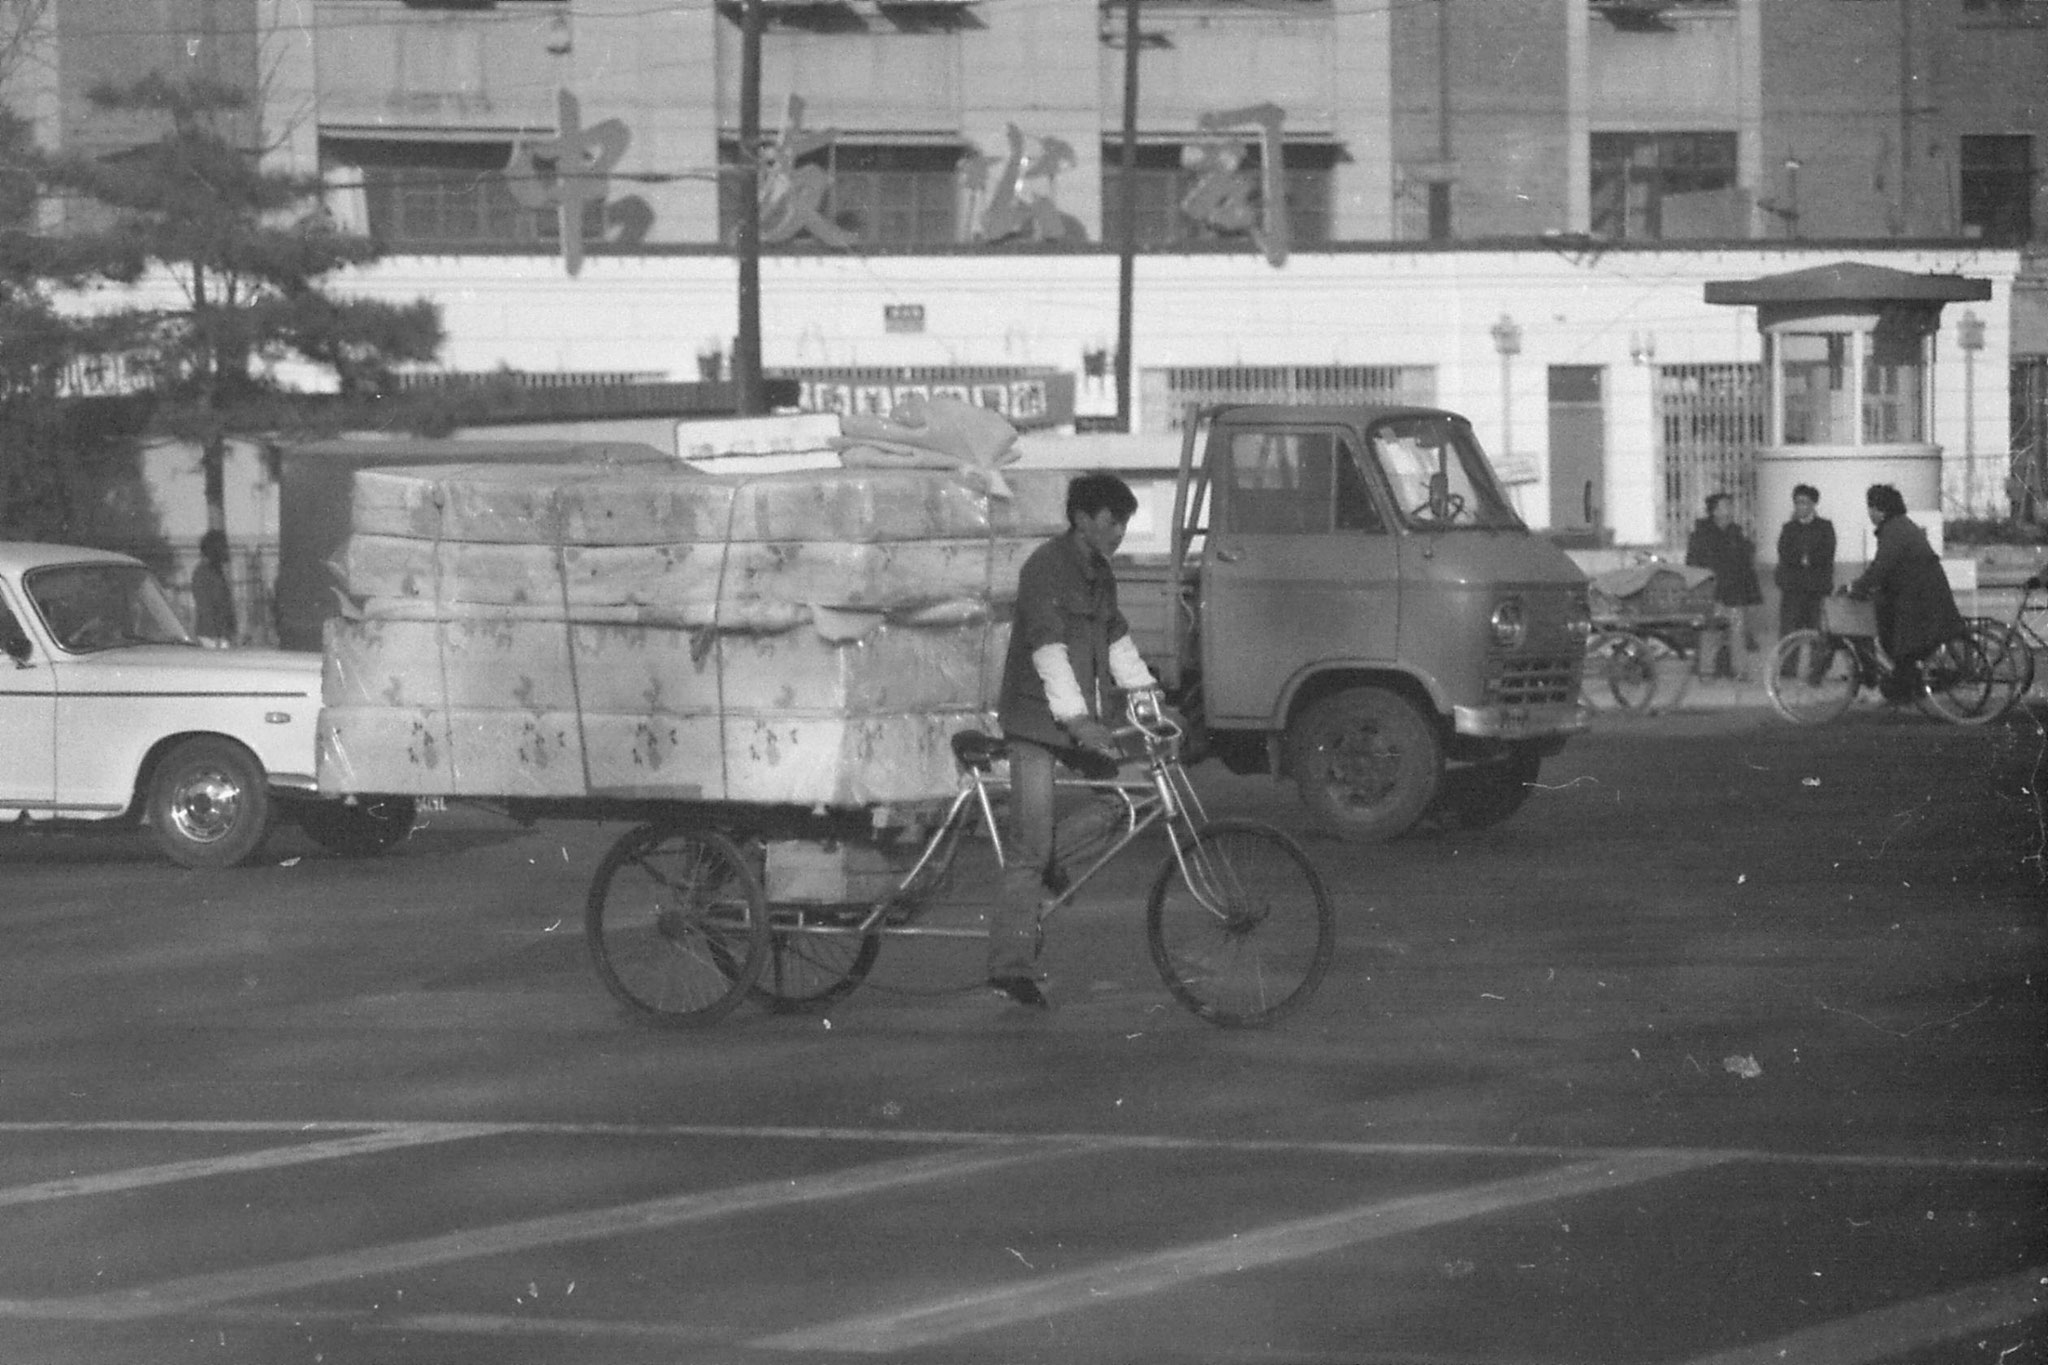 23/11/1988: 1: street scenes outside Friendship Hotel